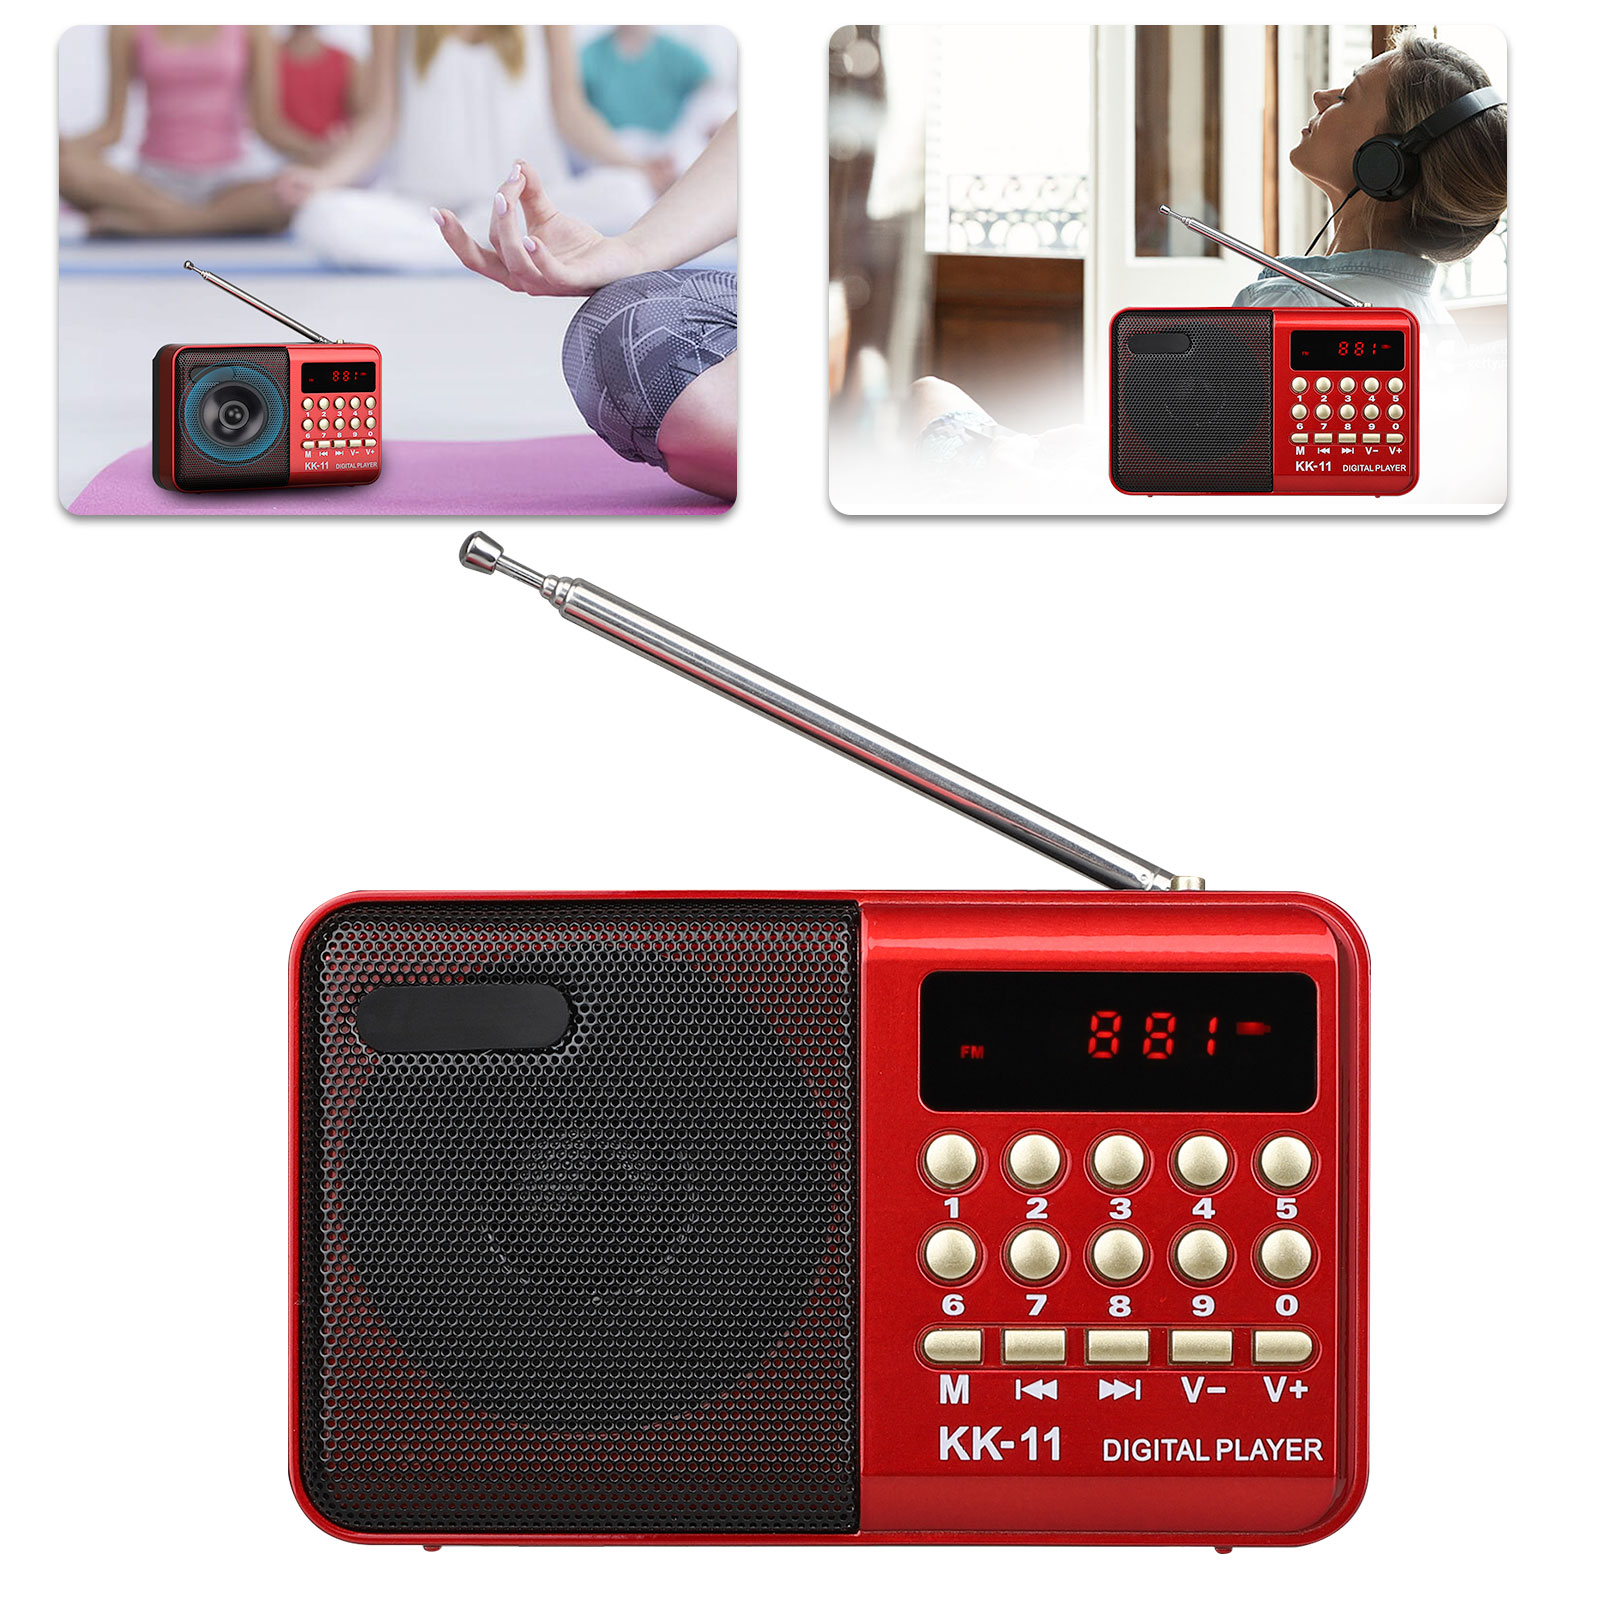 JKRED Portable MP4 Player with Dual Magnetic External Speaker 1.8 LCD Screen FM Radio Video Movie with Speaker TF Card Digital MP3 MP4 Media Player